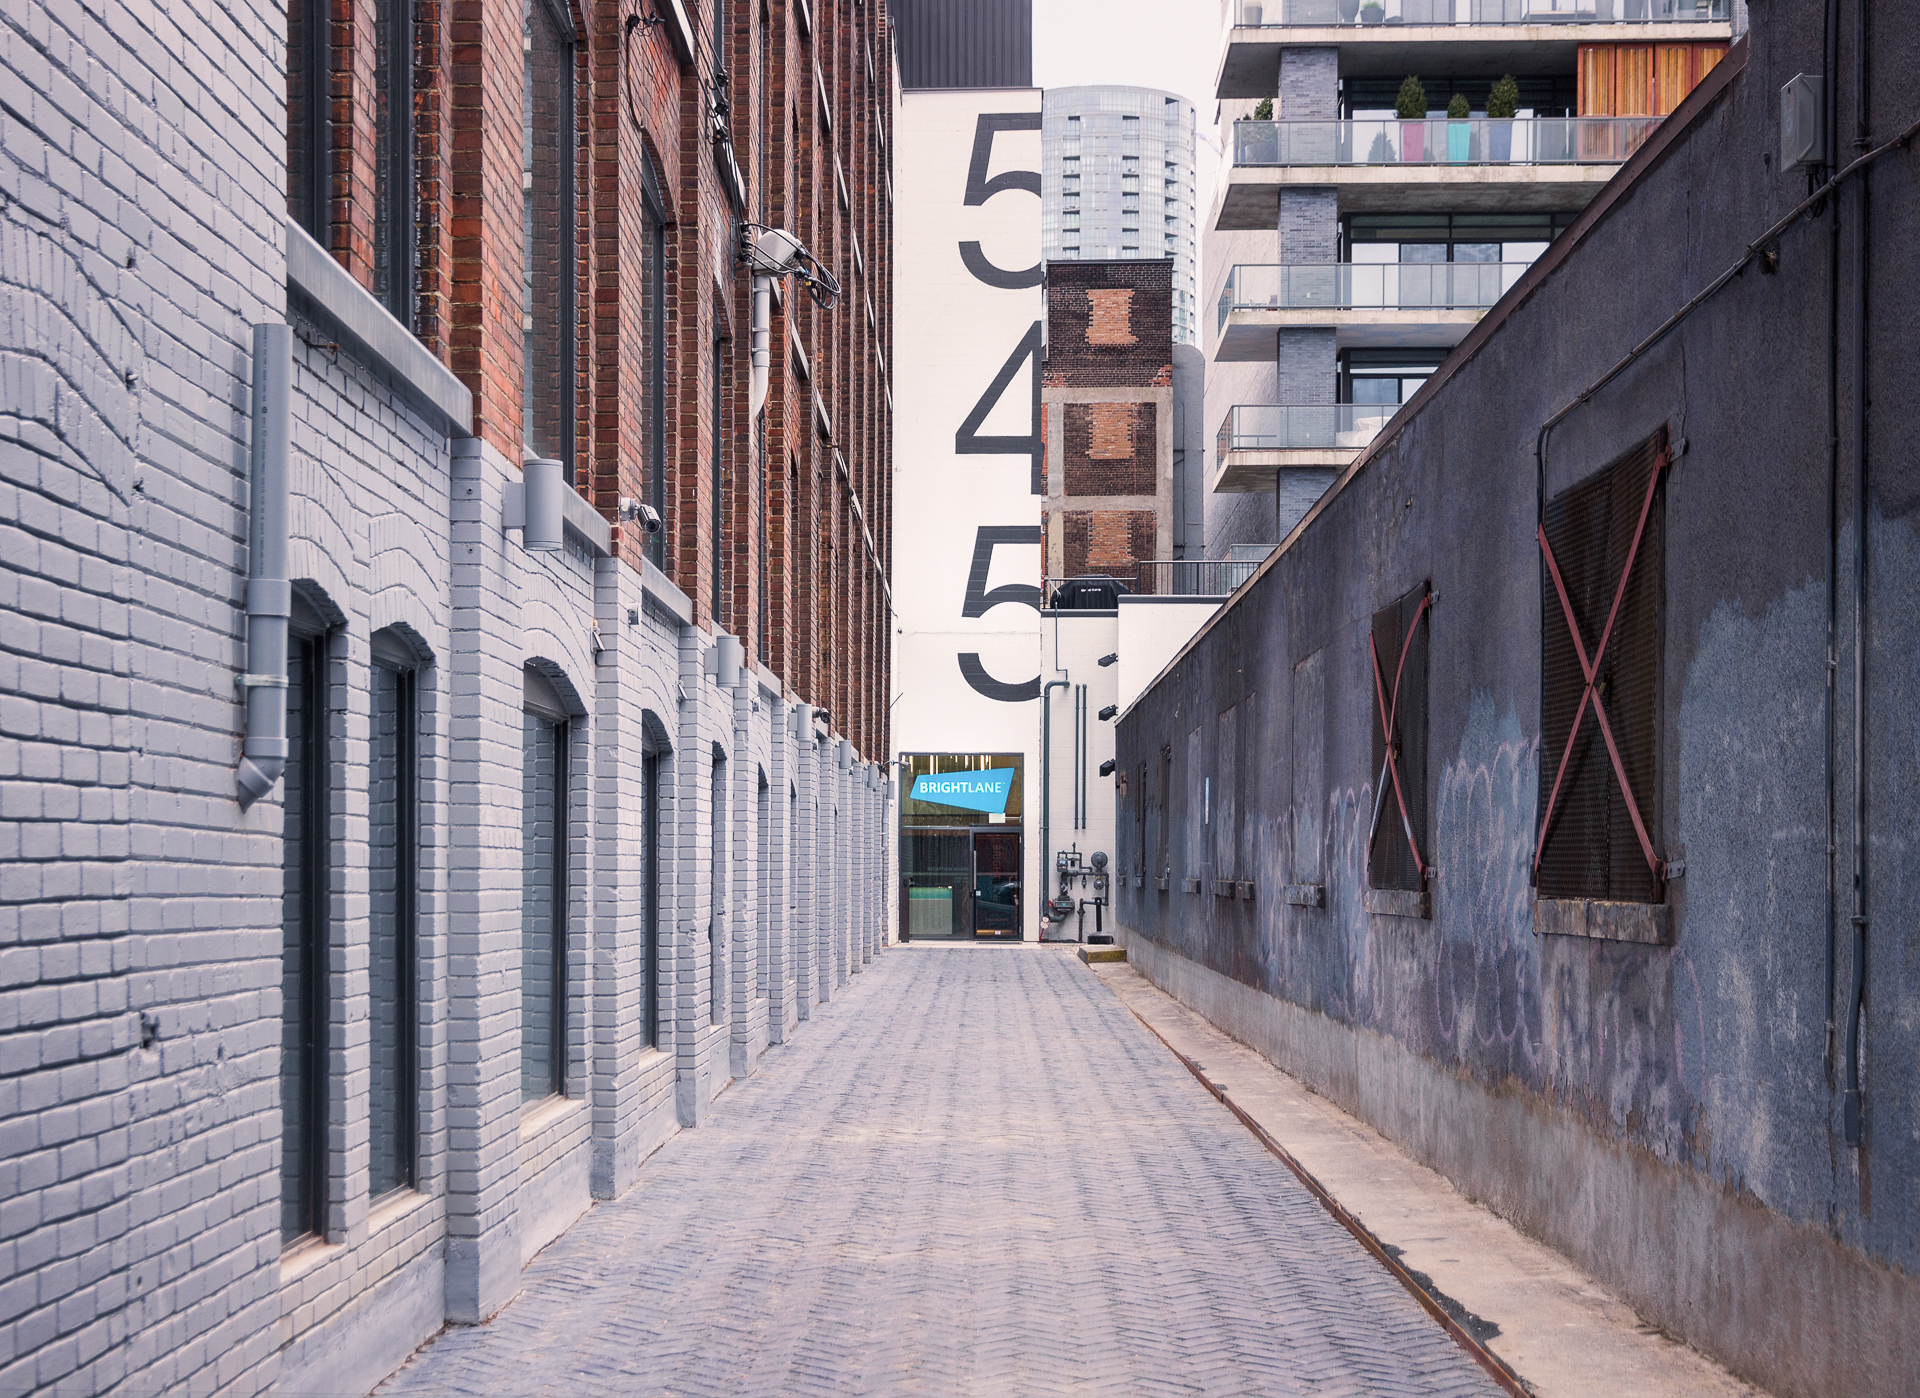 The escape game uses the same door as Brightlane Inc. Look for a long alleyway with a huge 545 on the back wall, walk to the end of it, call the number and we'll receive you at the door.